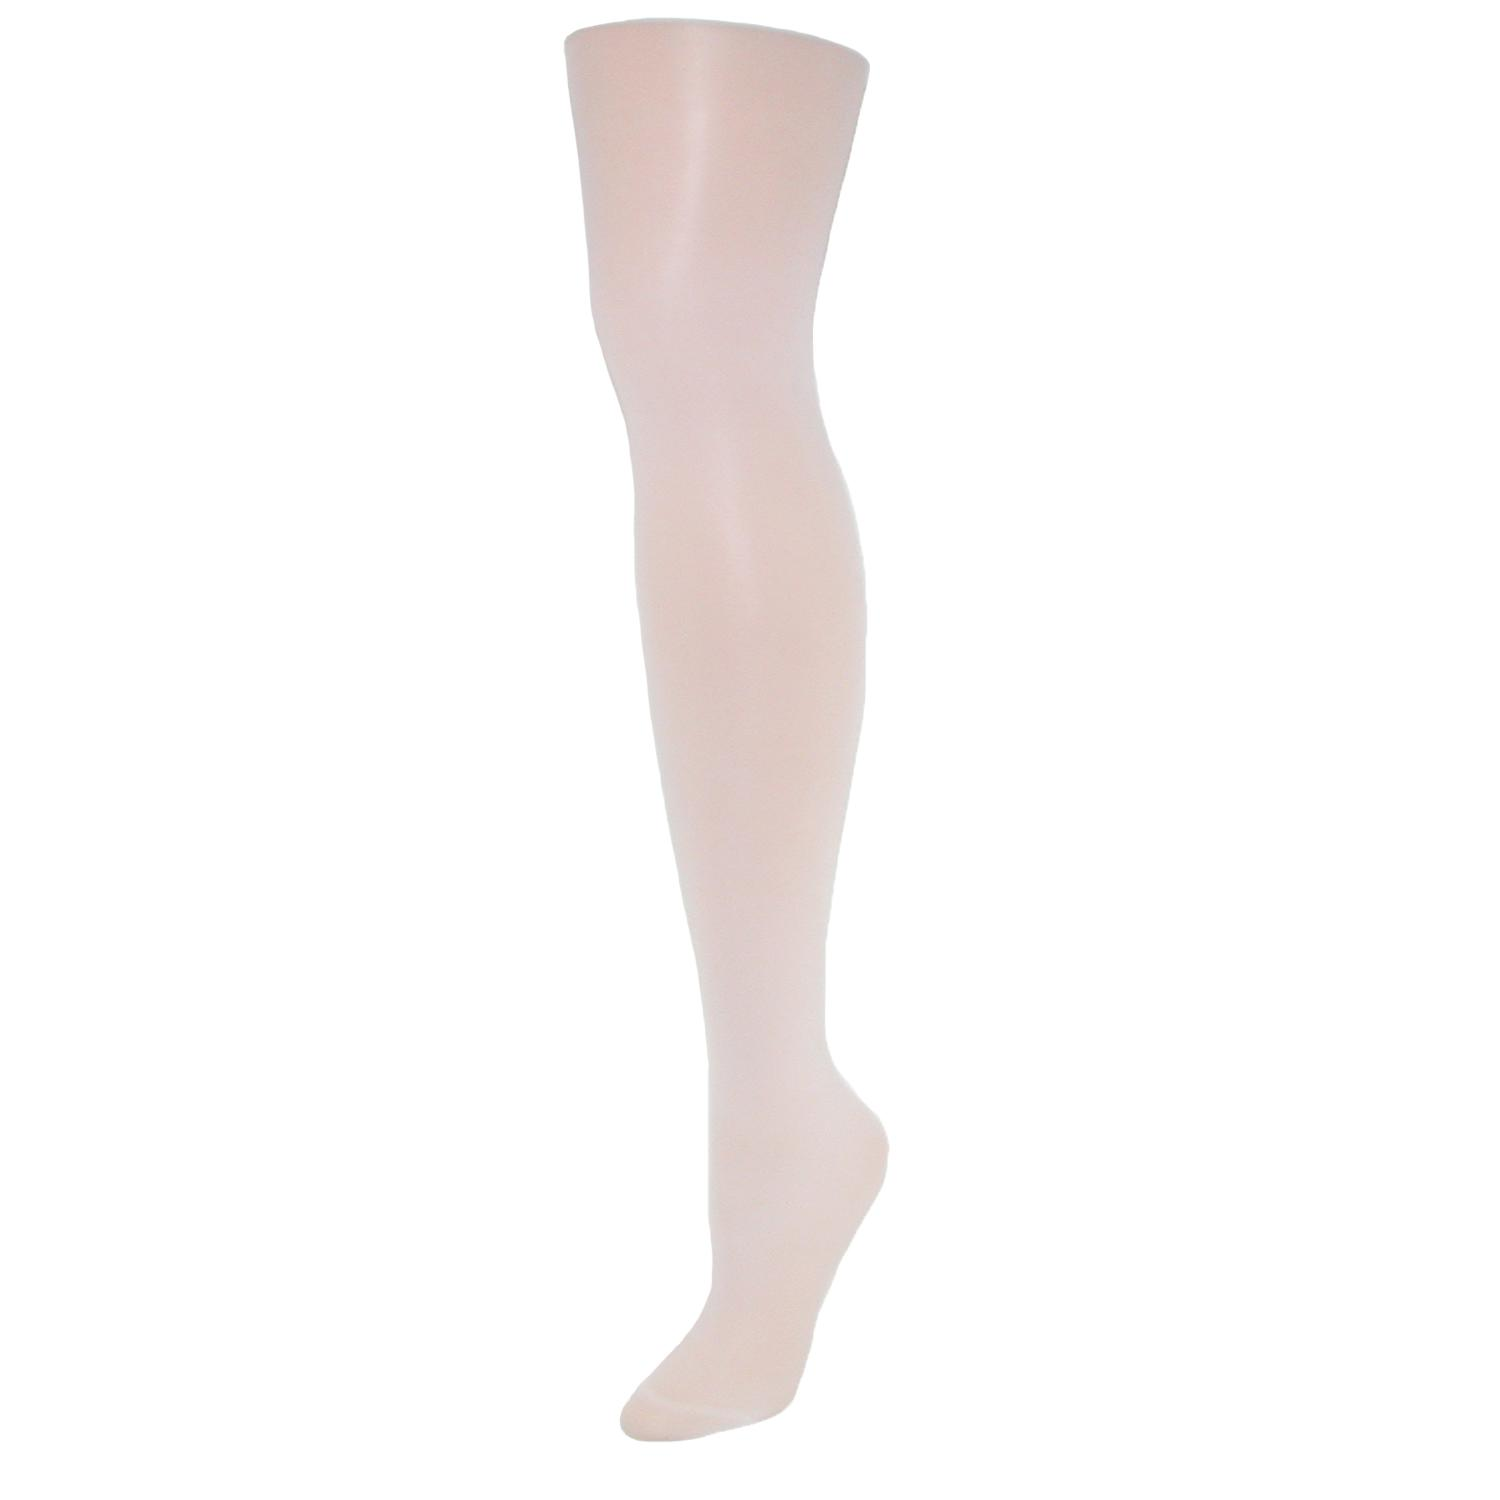 Hanes Alive Women's Nylon Support Reinforced Toe Sheer Pantyhose